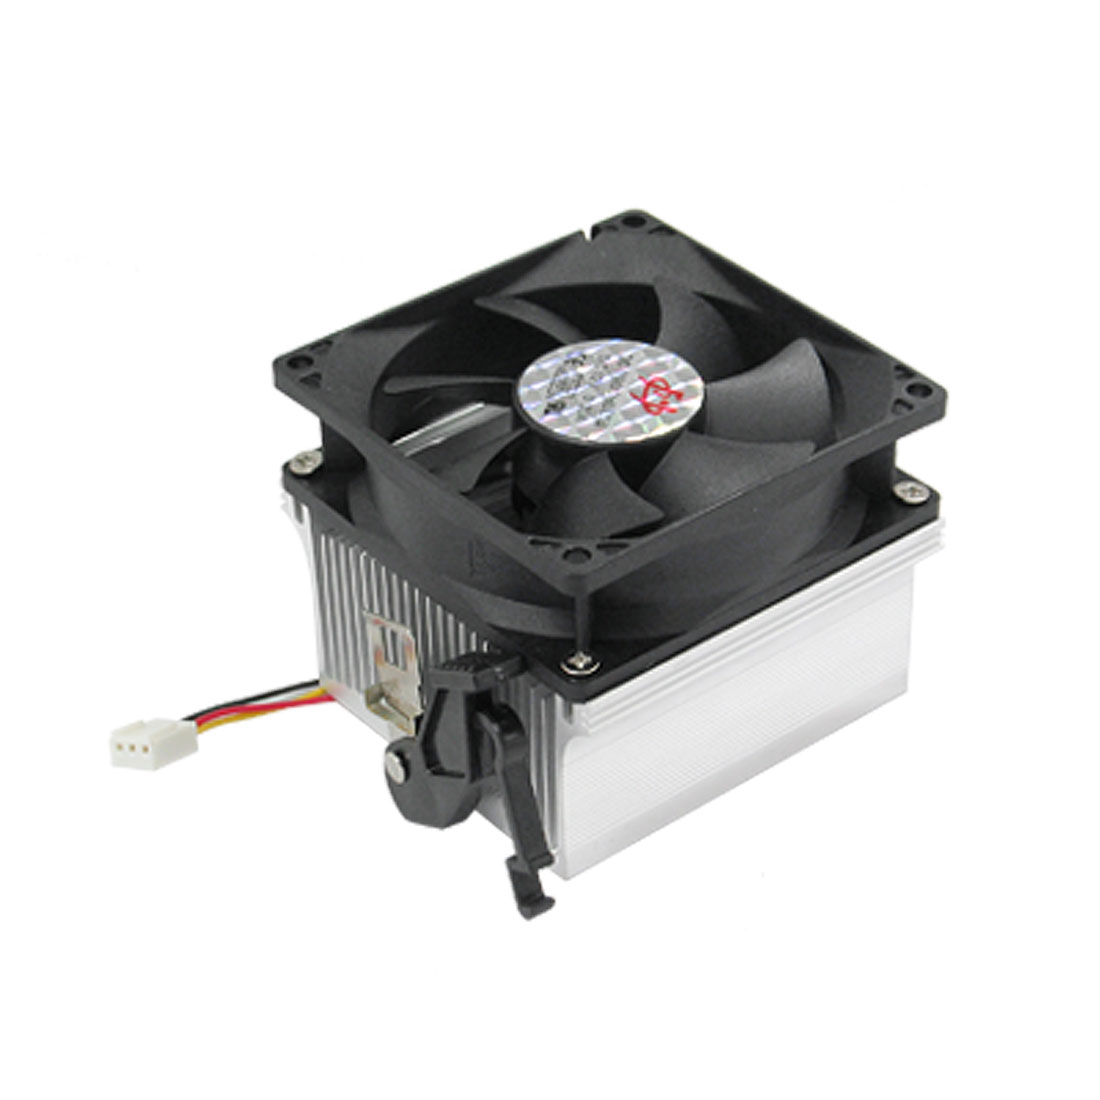 New Sleeve Bearing 3Pin CPU Heatsink Fan for AMD Socket 754 939 940 Athlon 64